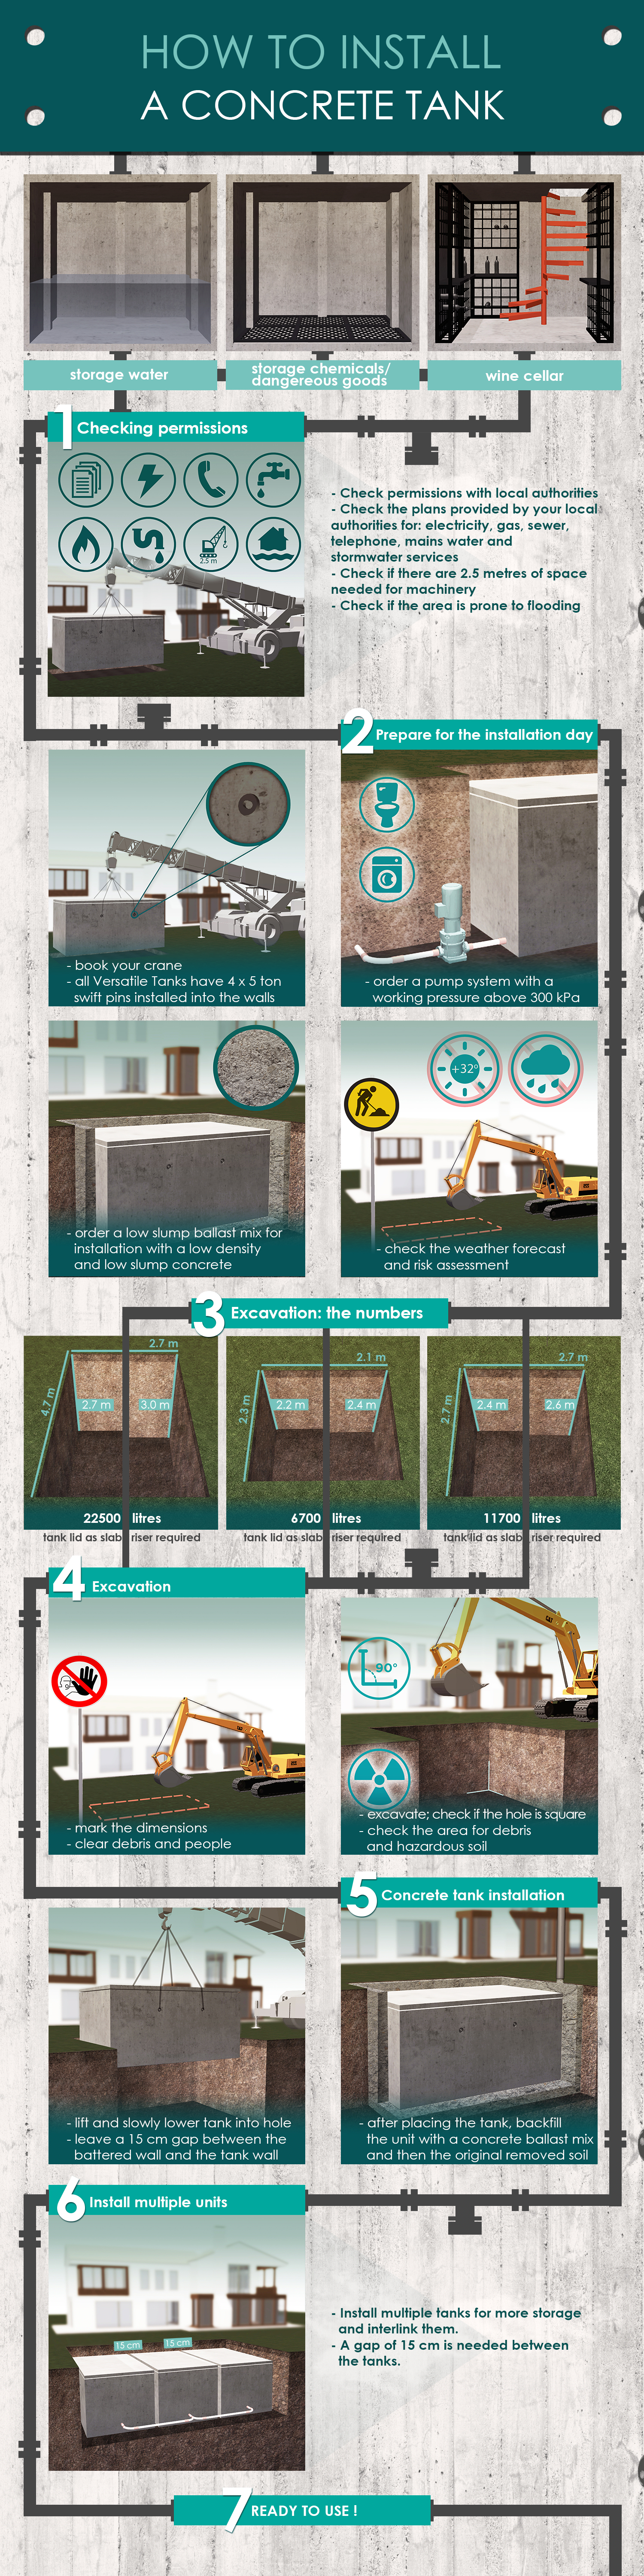 How to install a concrete tank infographic